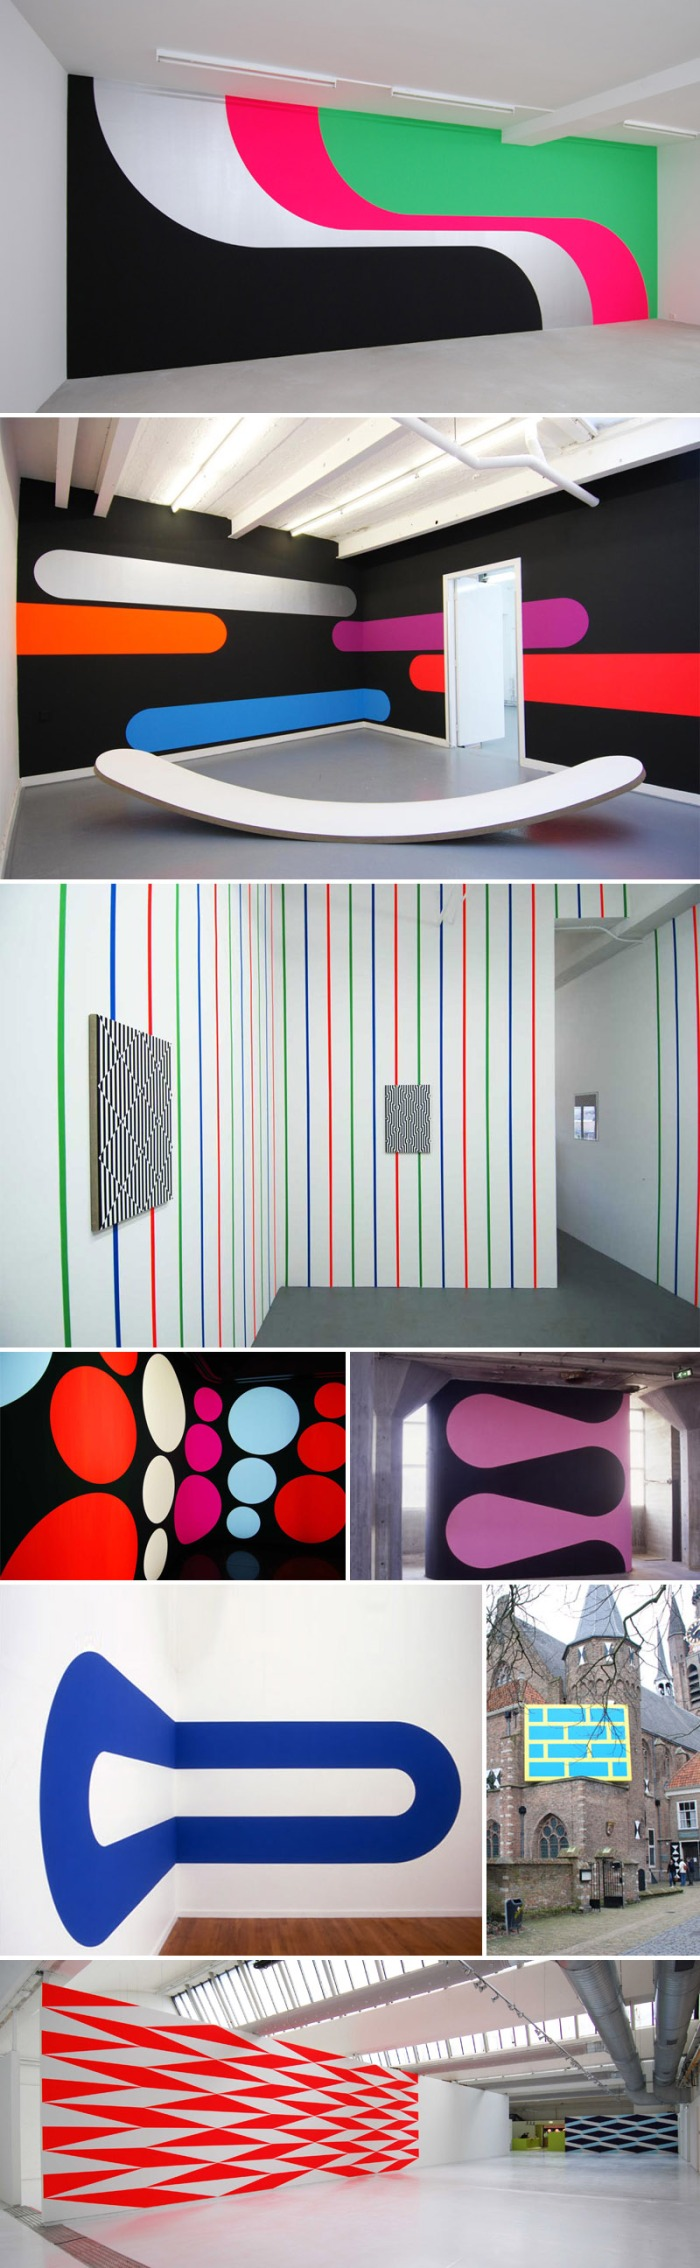 Jan van der Ploeg wall paintings, collabcubed